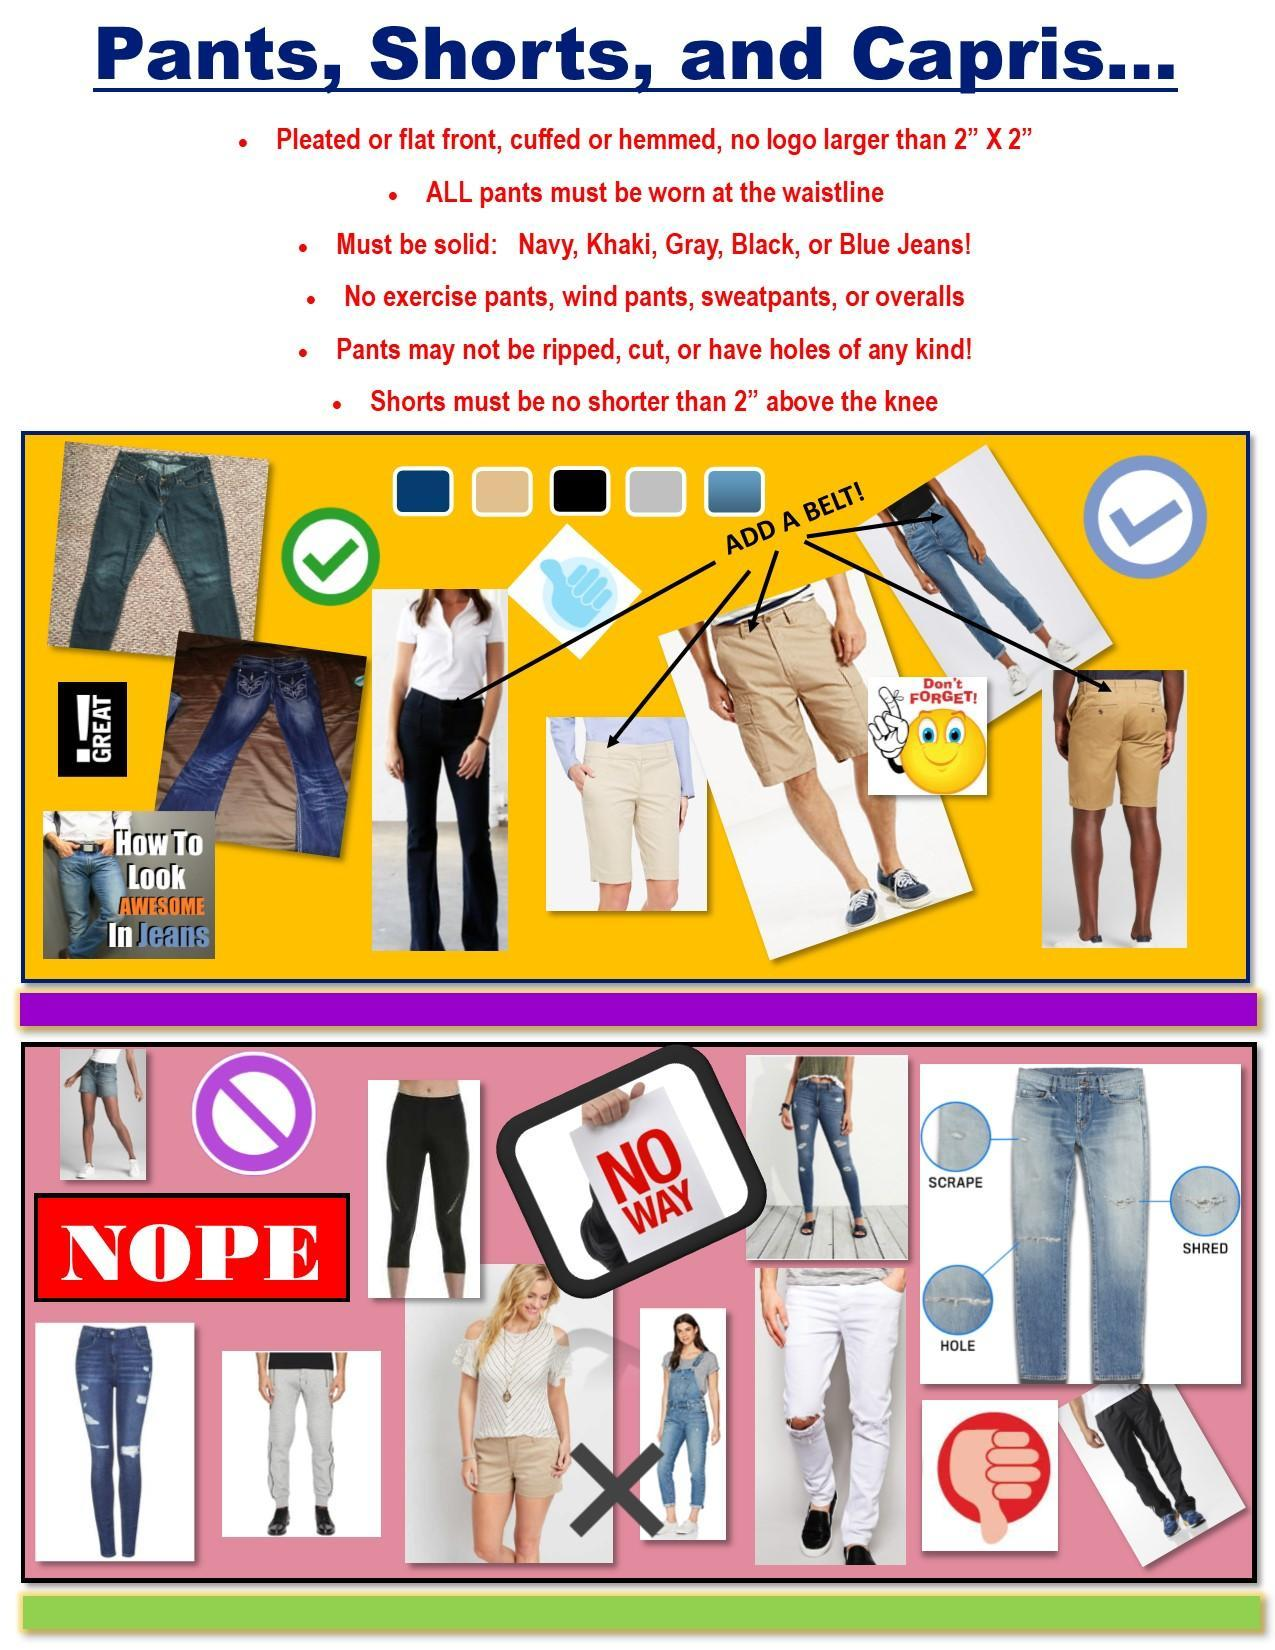 flyer for pants and jeans dress code